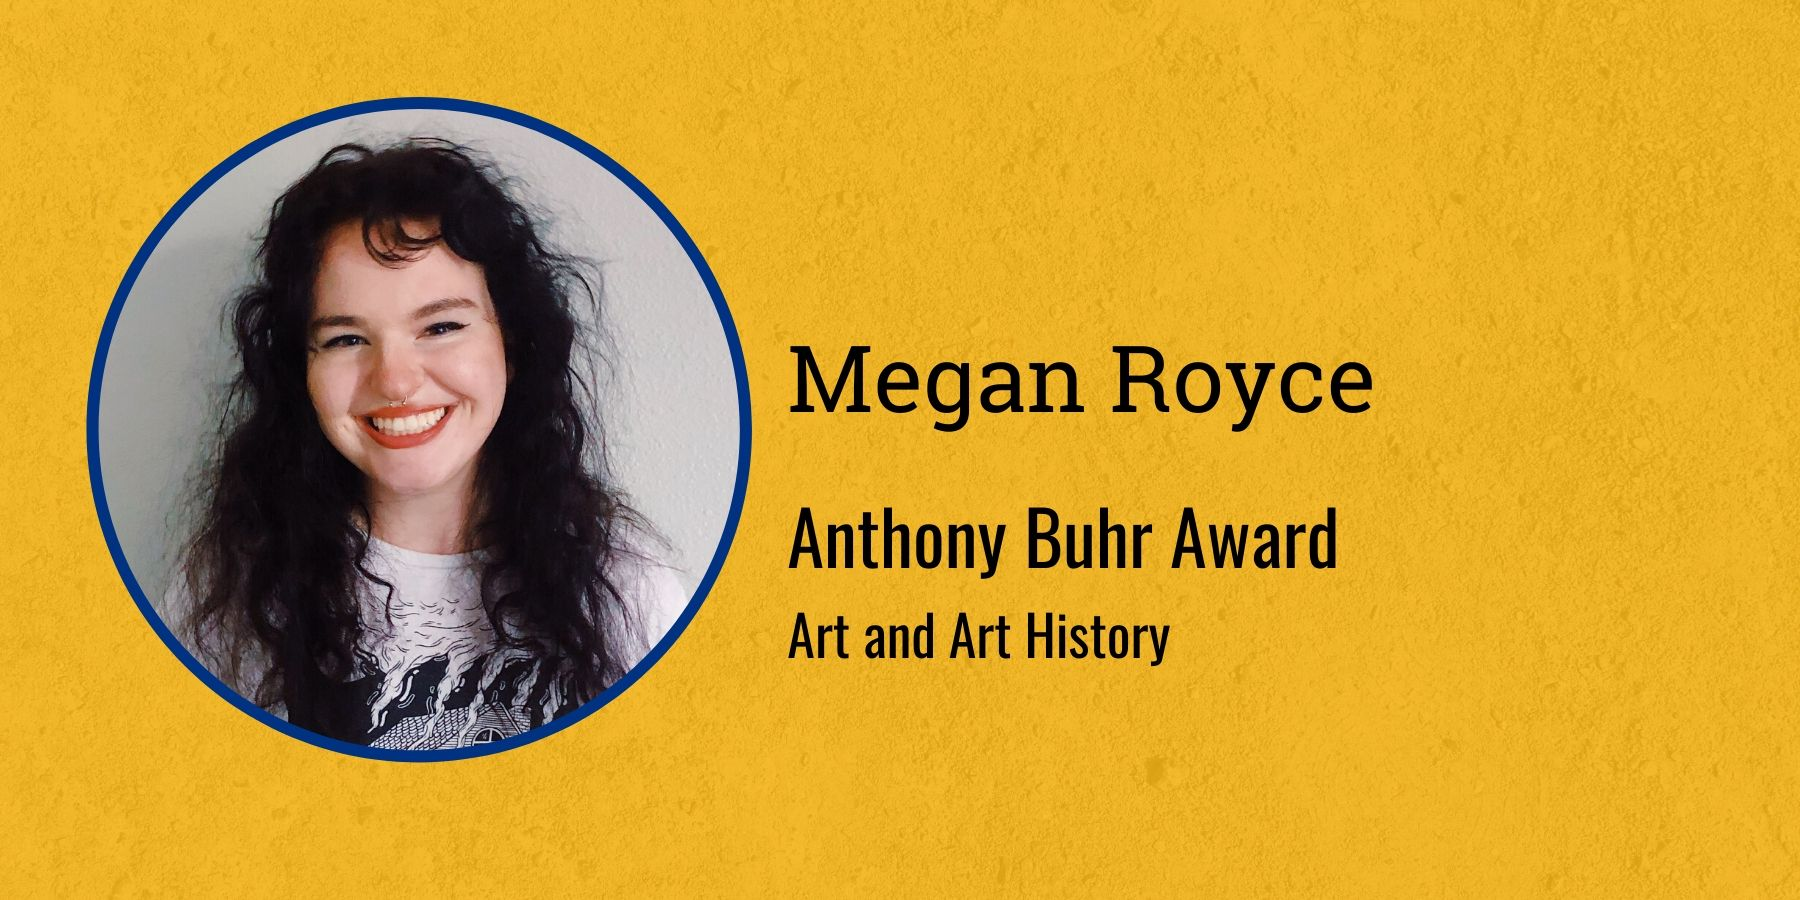 Photo of Megan Royce and text Anthony Buhr Award, Art and Art History